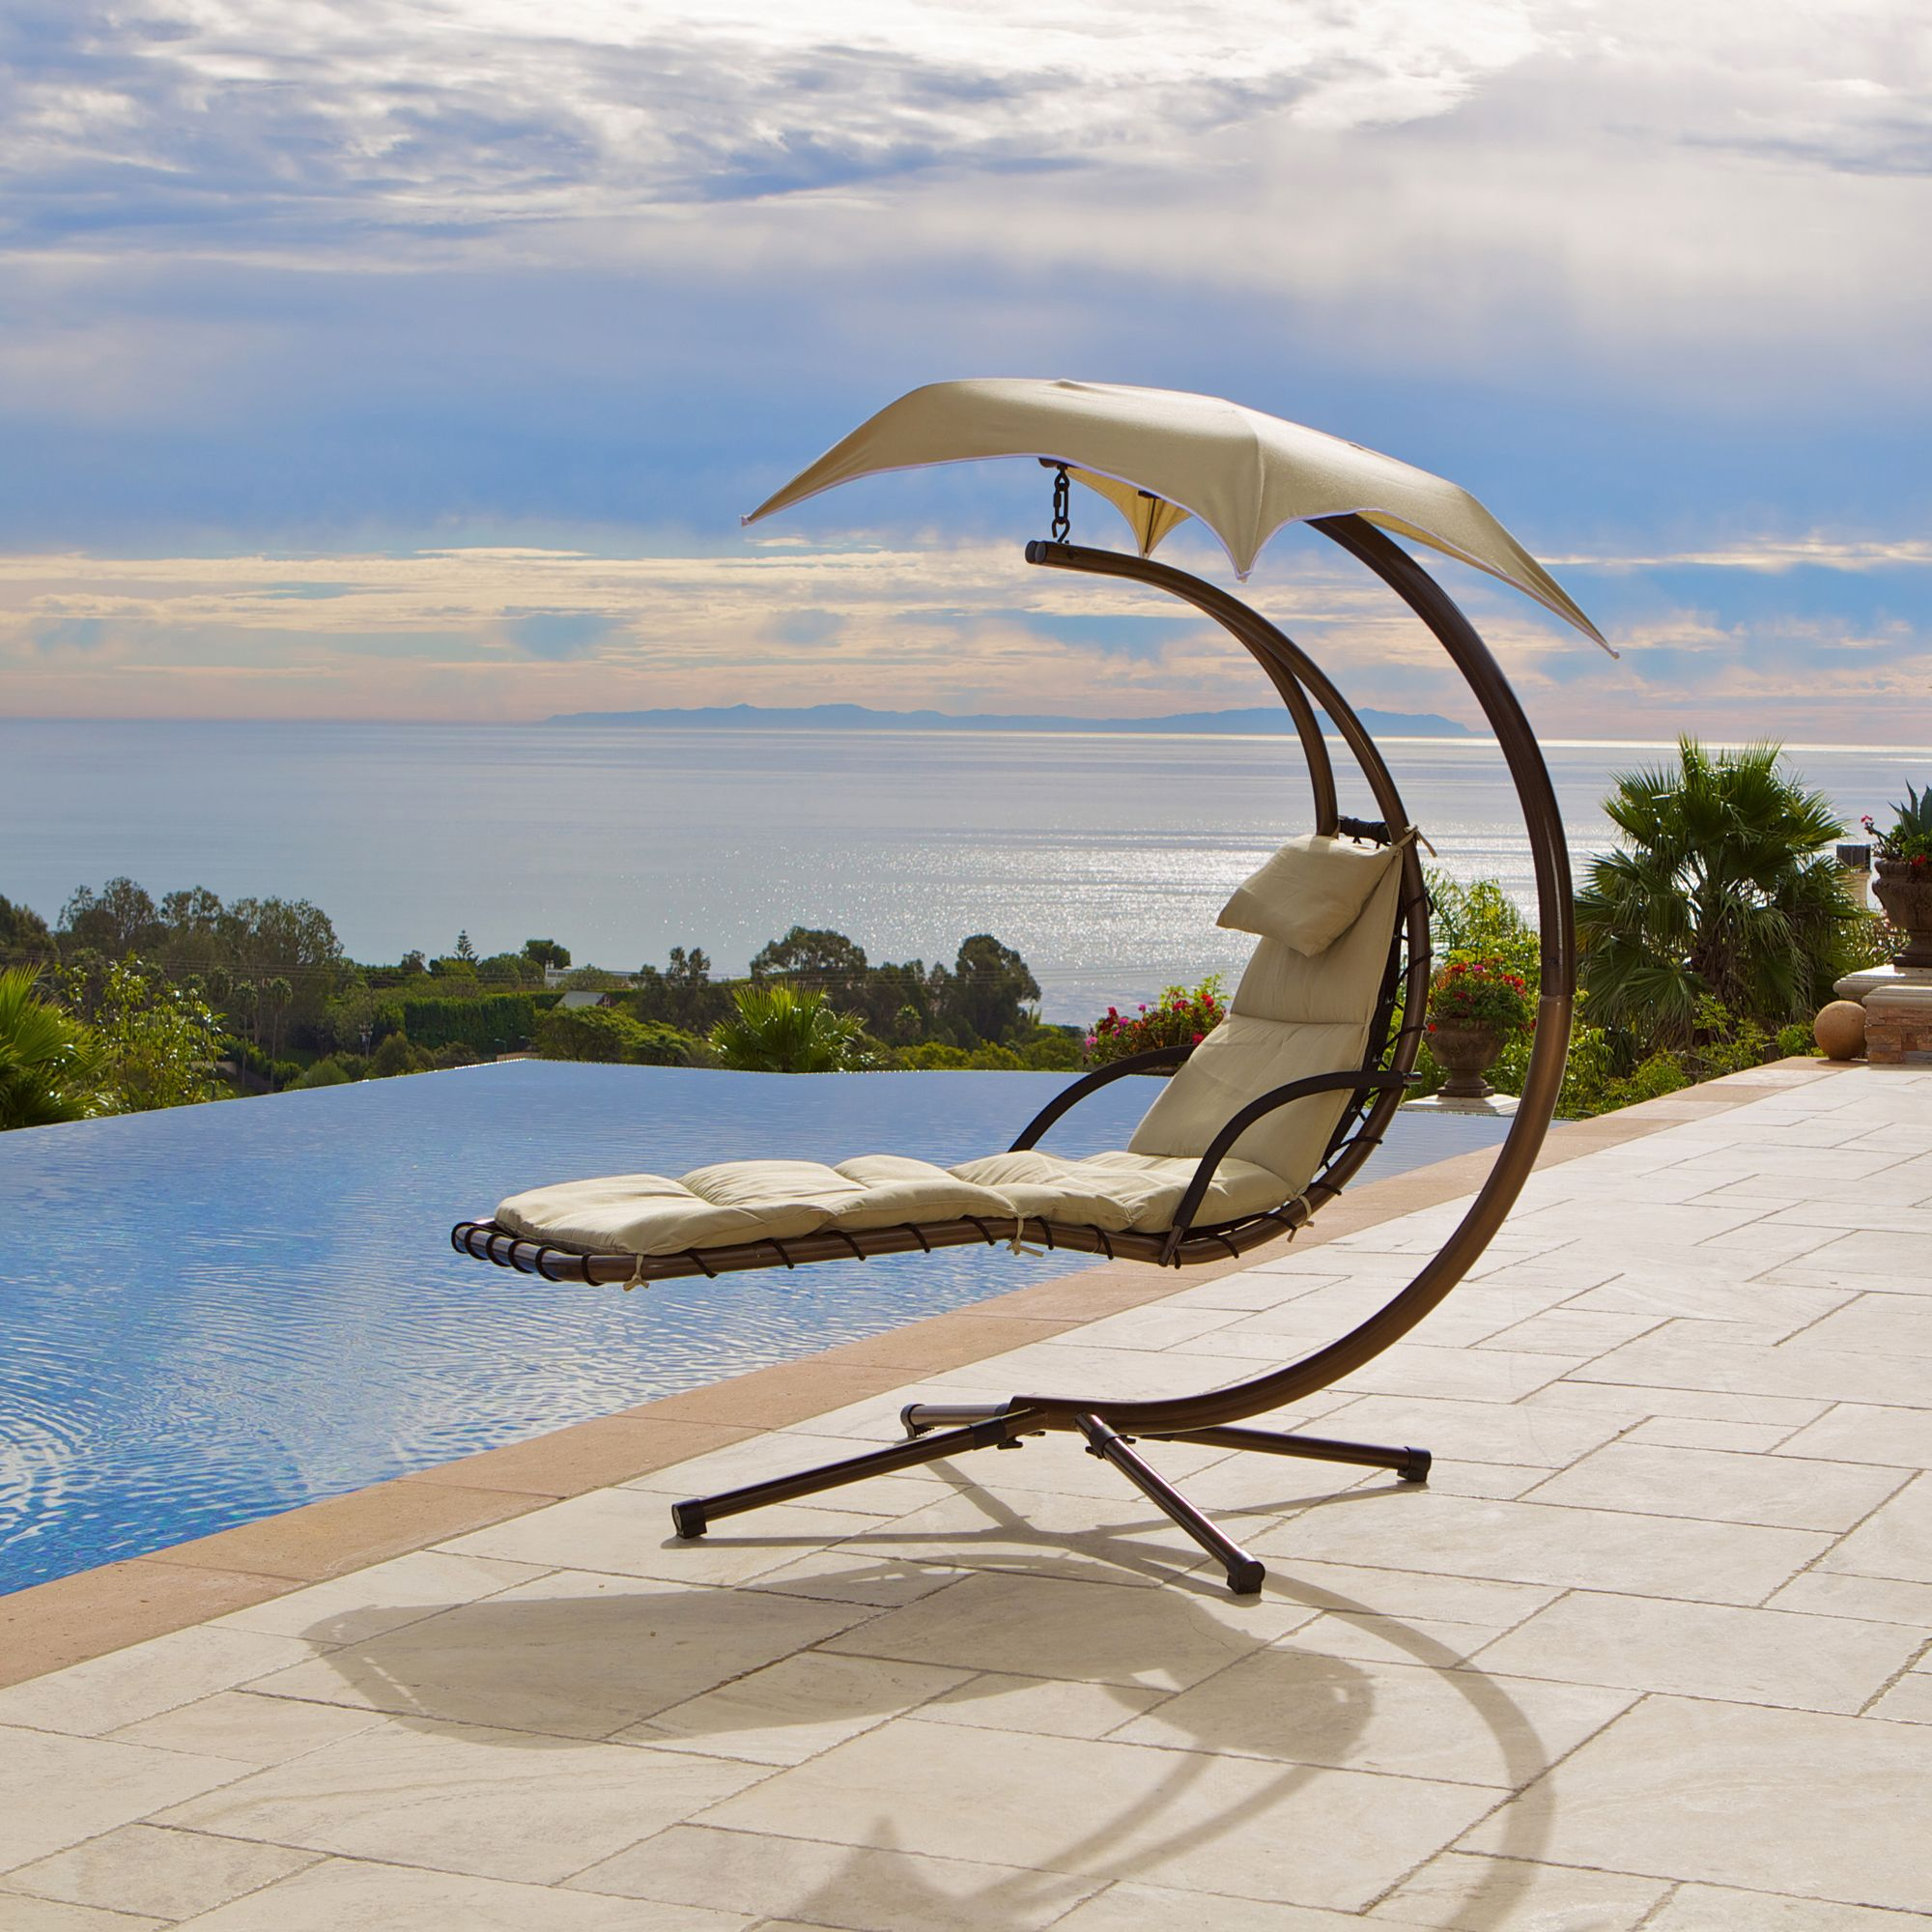 Outdoor Dream Chair Kids Lounge Swinging Chaise Orbital Loungers